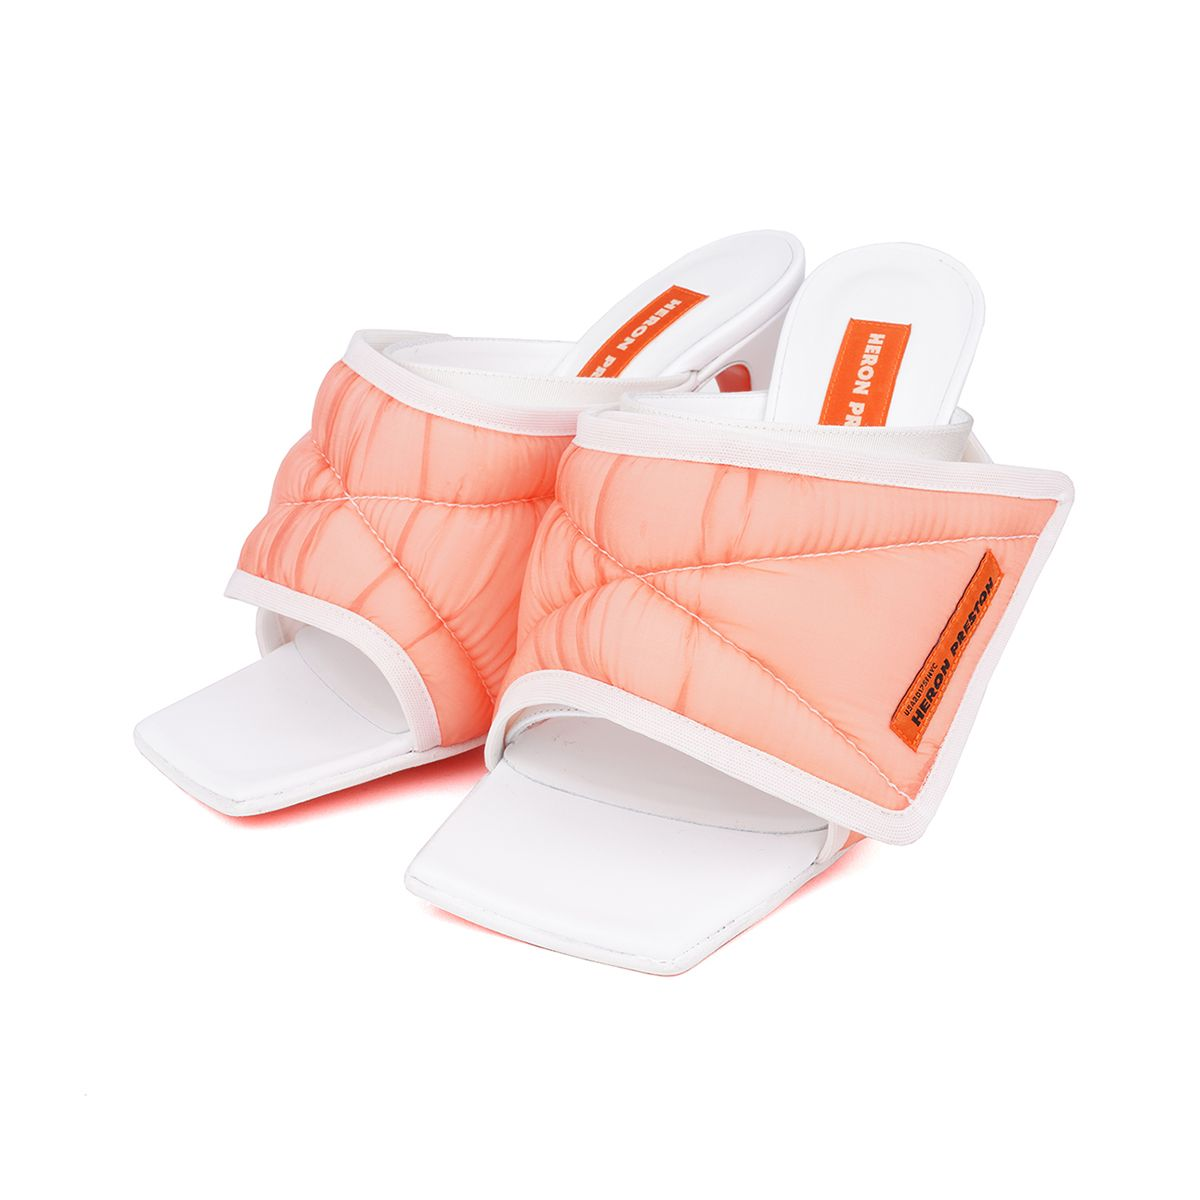 HERON PRESTON ORGANZA MULE / 1900 : ORANGE NO COLOR